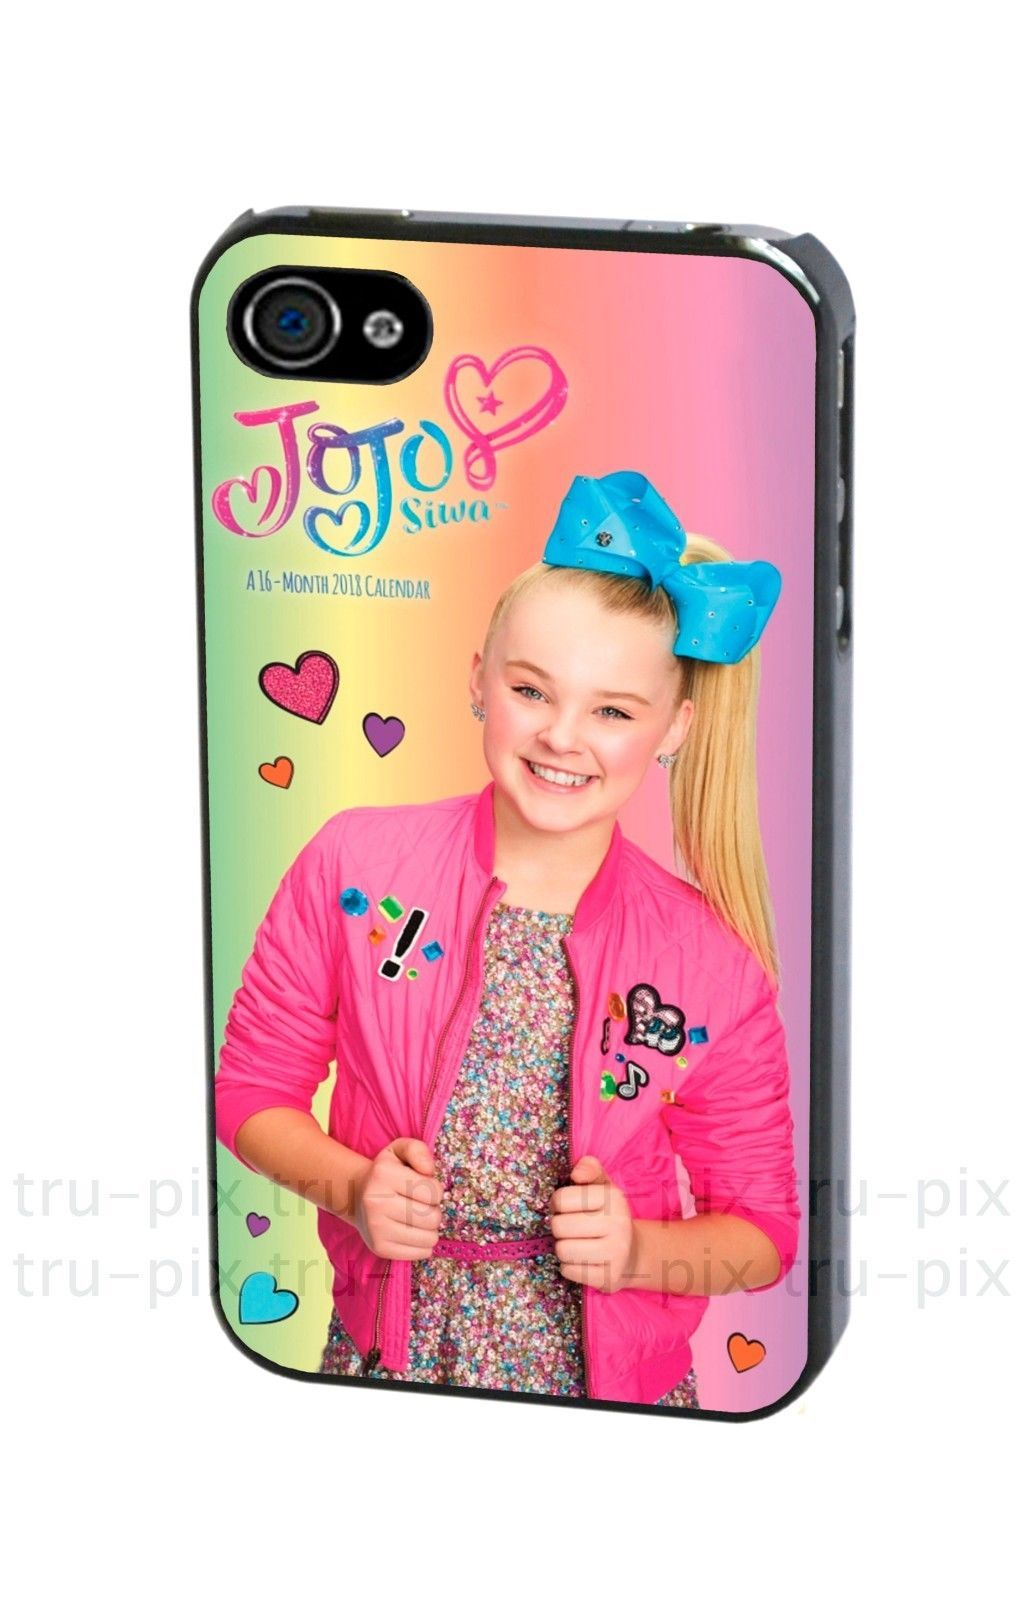 finest selection 68353 d01b6 JoJo Siwa Bow Joelle Joanie Phone Case Cover for iPhone or Samsung ...